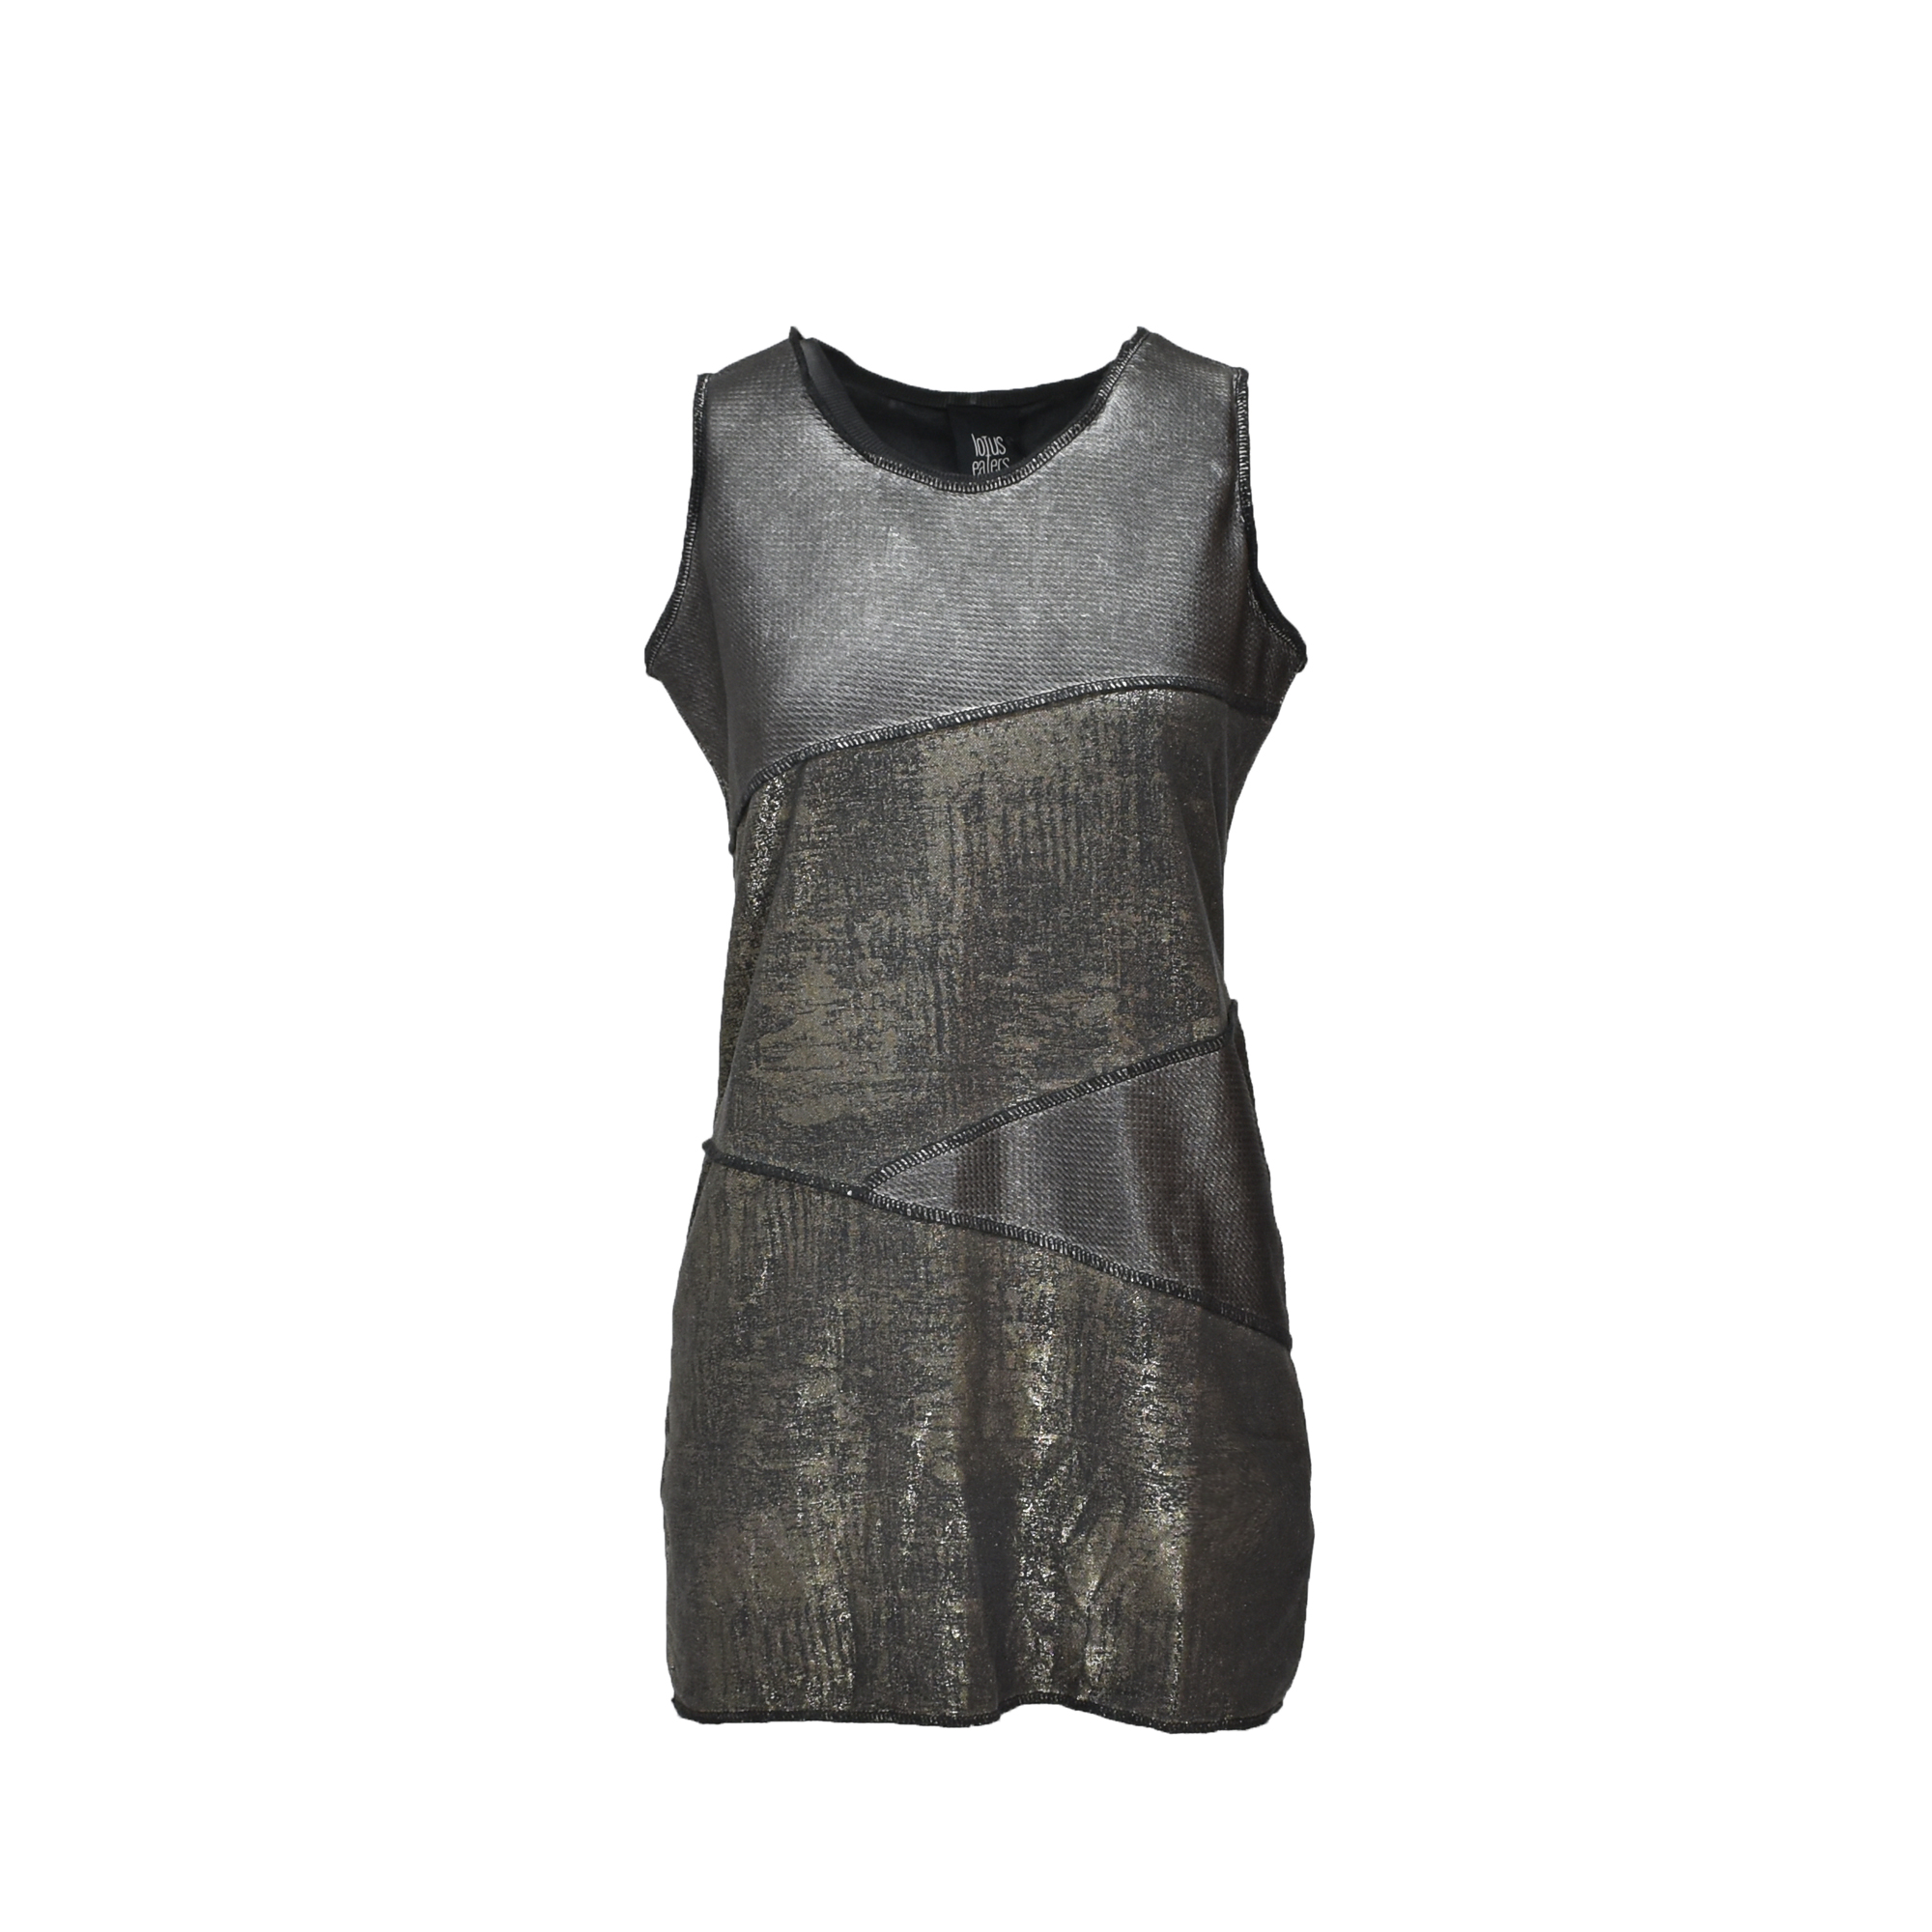 LOTUS EATERS DRESS - SAMI BLACK